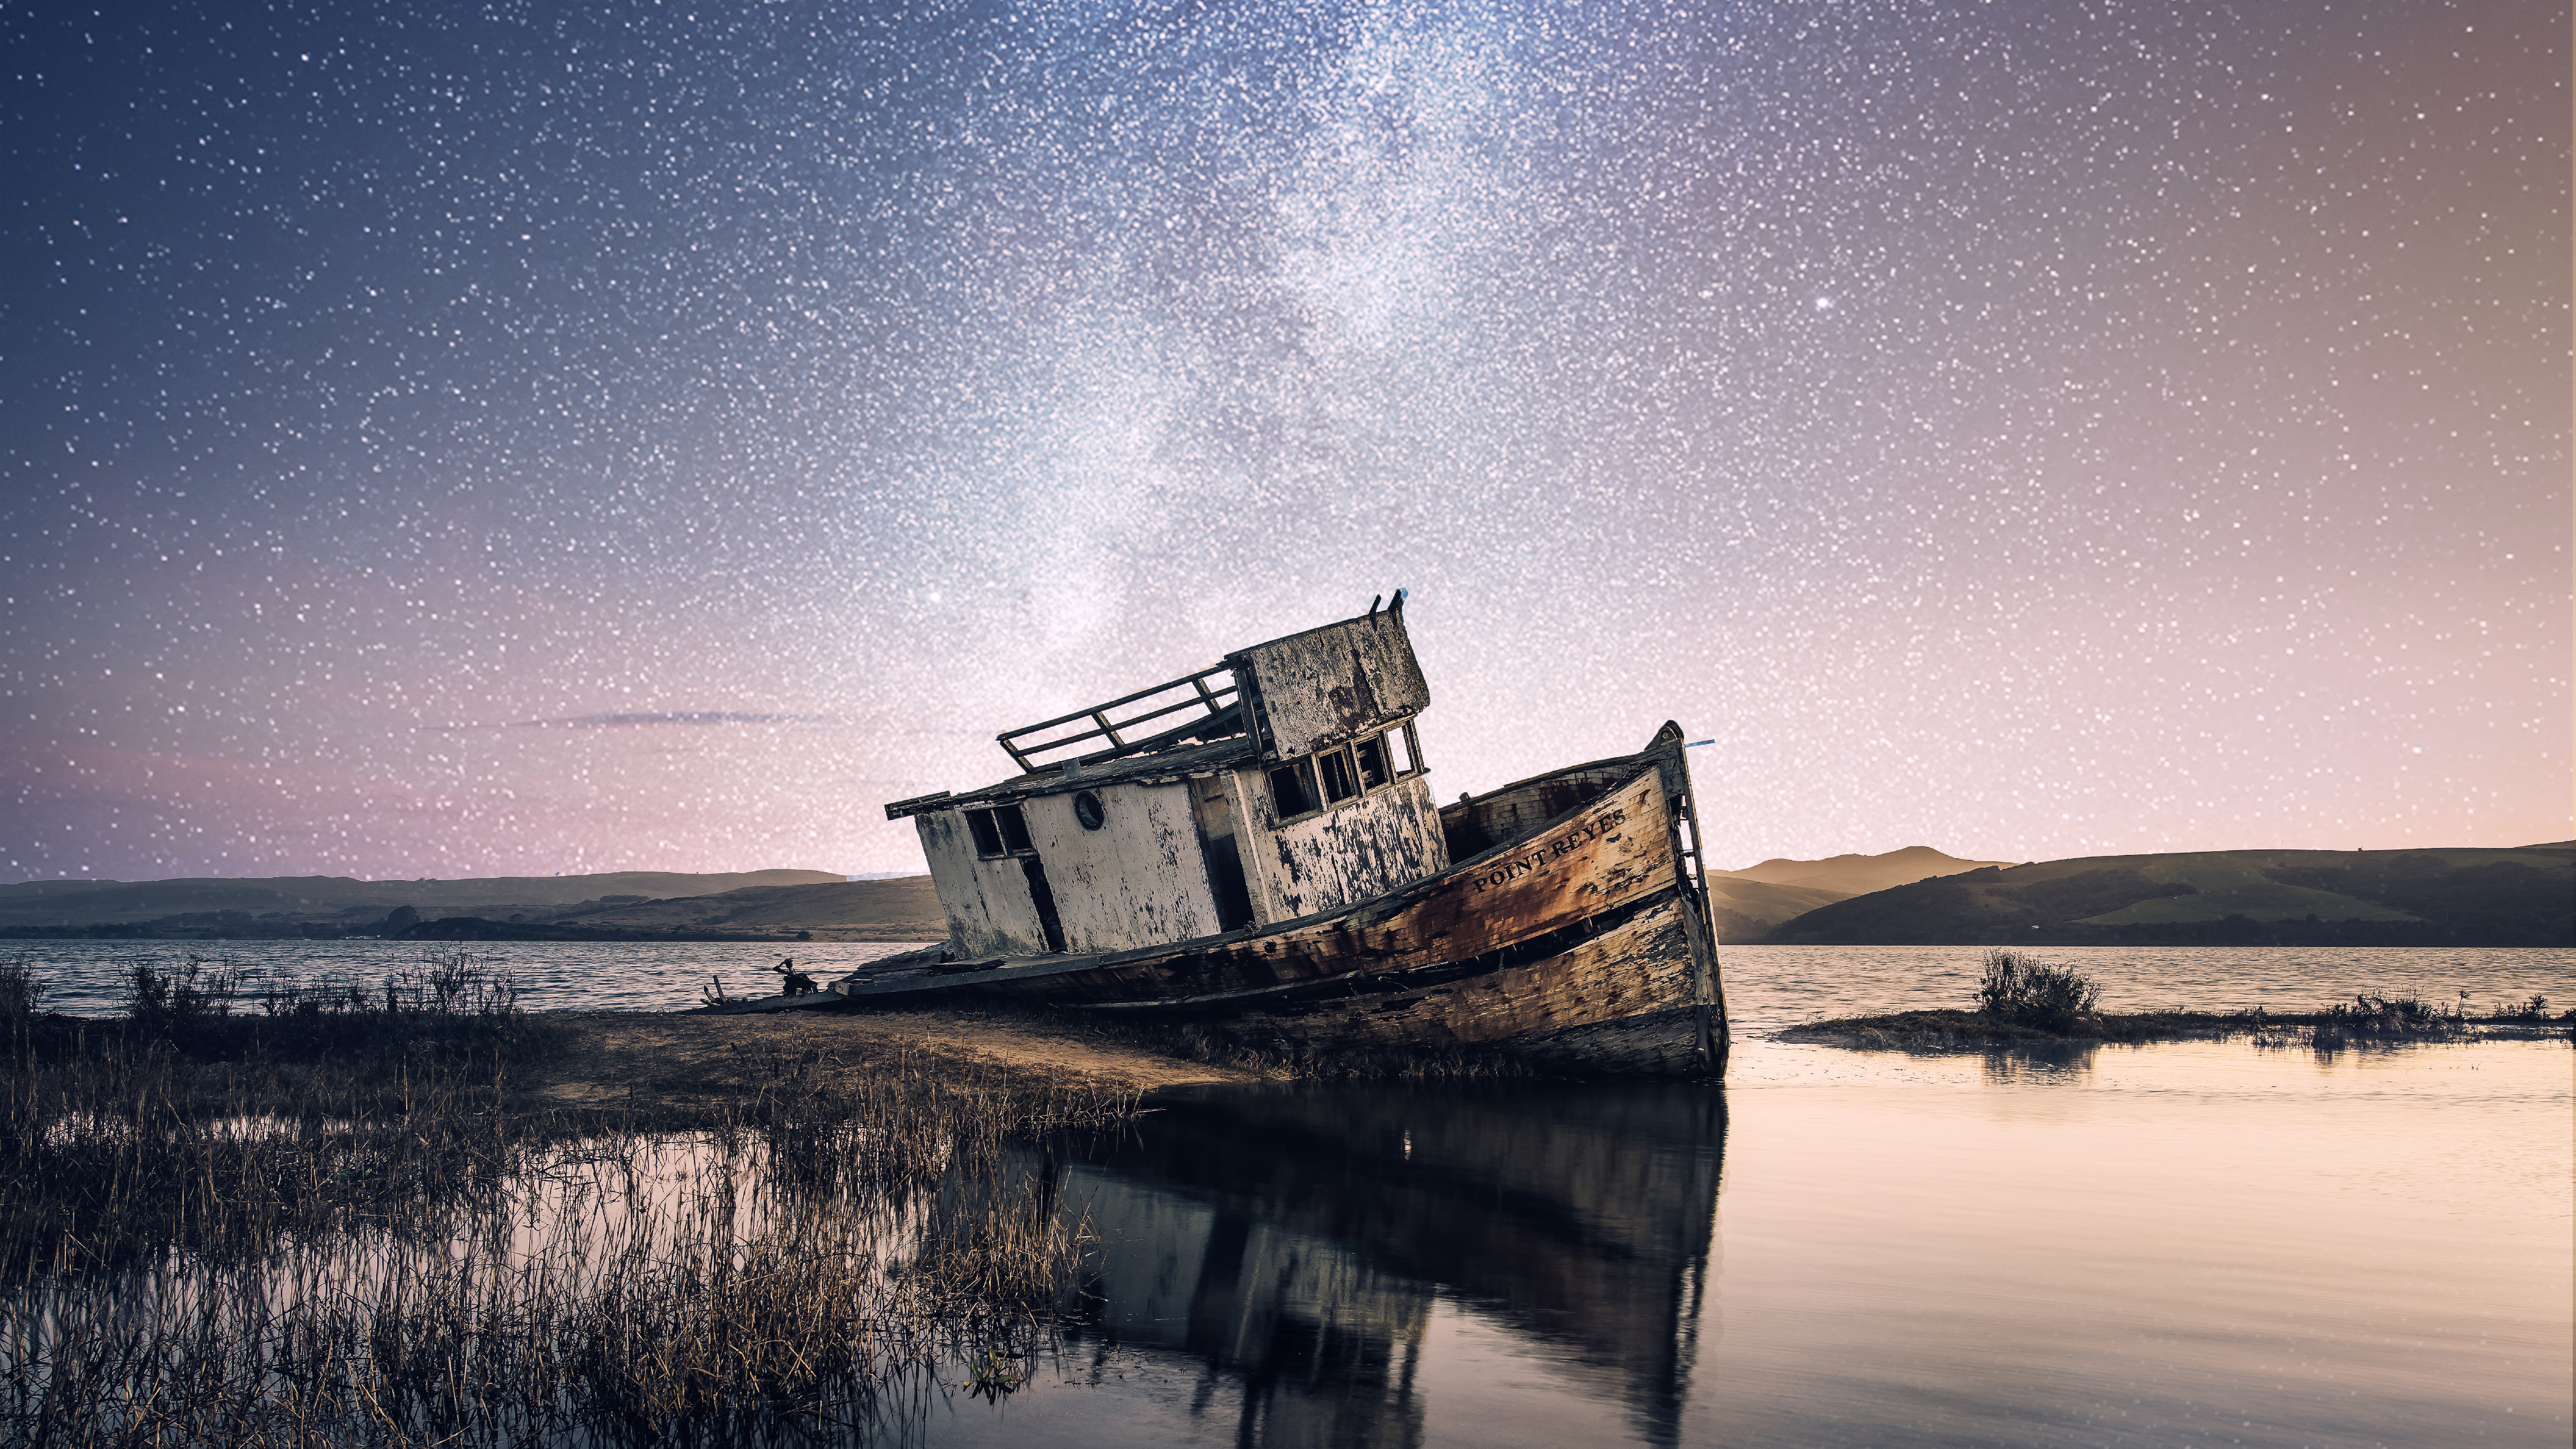 Abandoned Beach Boat 4k Wallpapers Hd Wallpapers